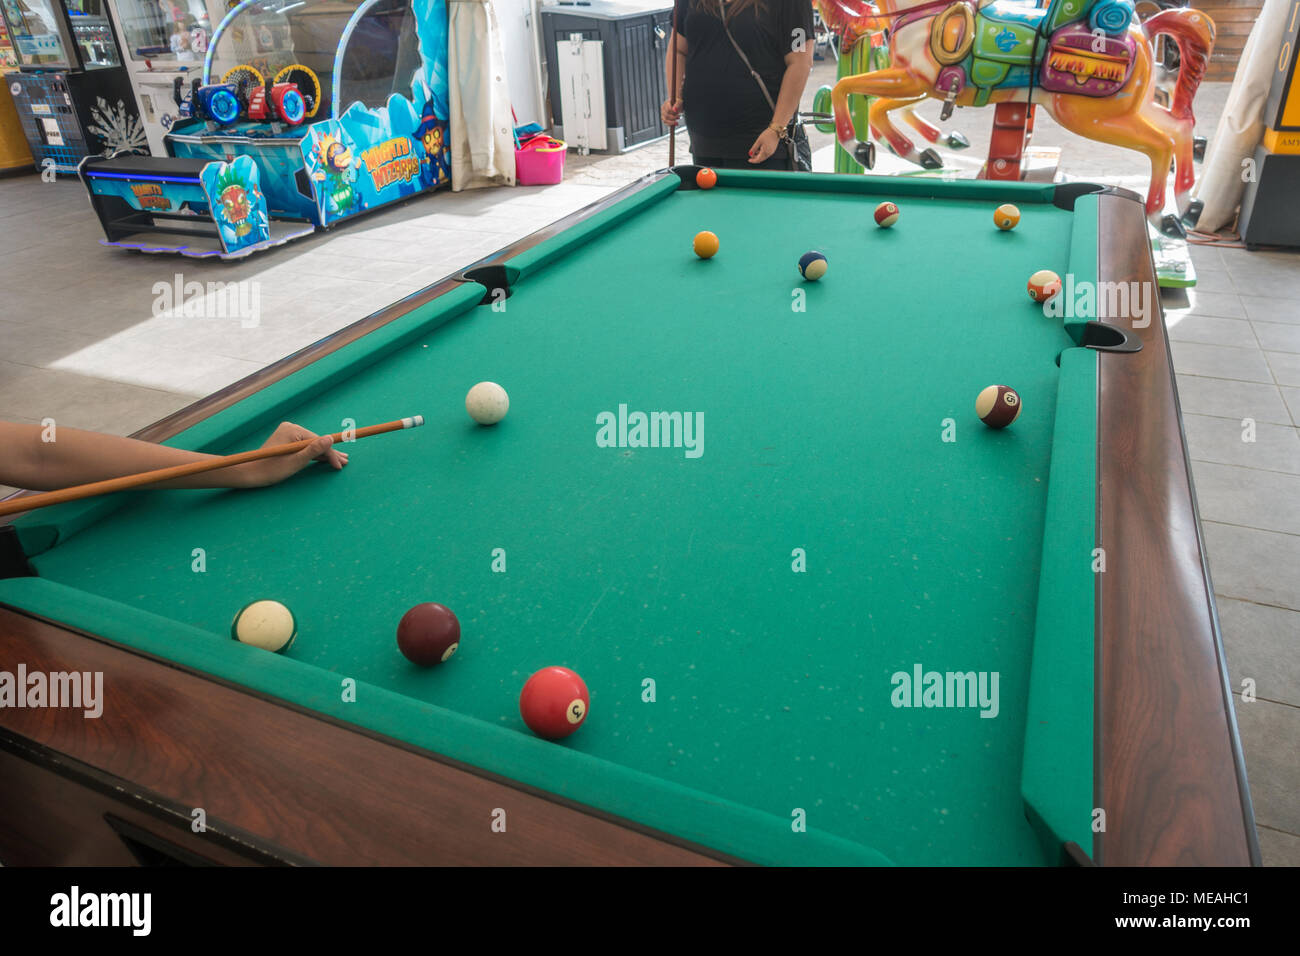 A player lines up a shot on a pool table. - Stock Image